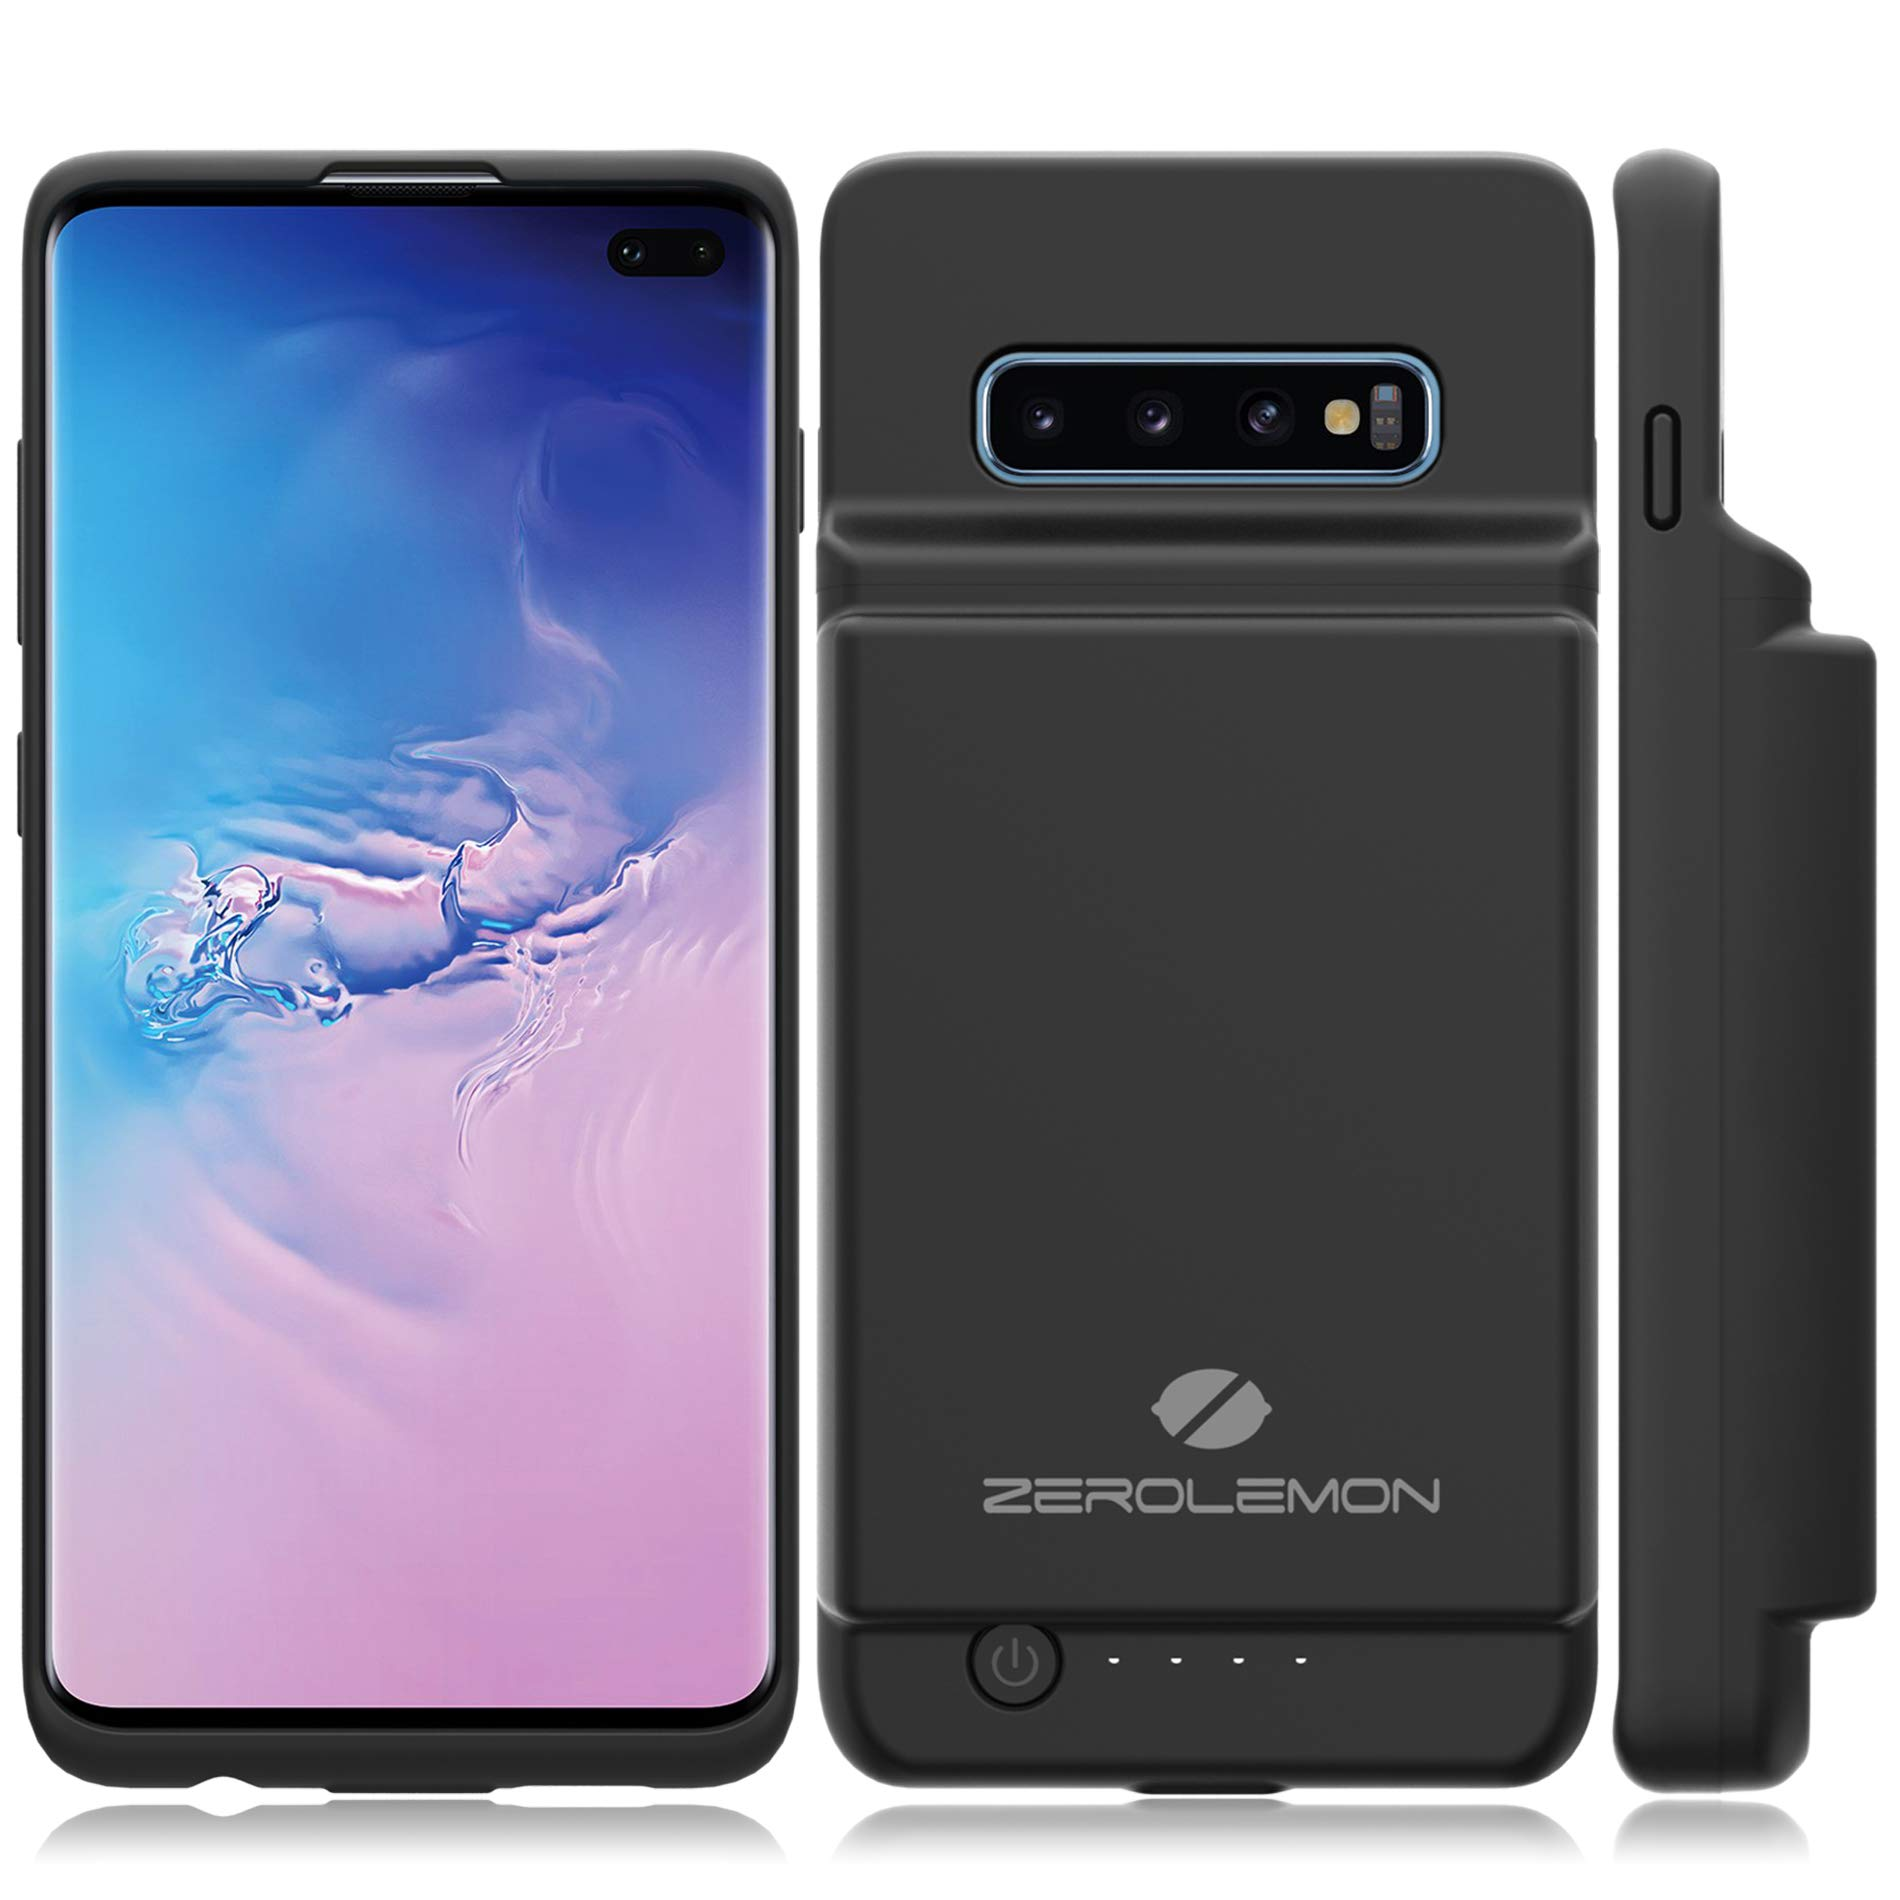 Galaxy S10 Plus Extended Battery Case, ZeroLemon Ultra Power 10000mAh Extended Rechargeable Battery Case with Full Edge Protection for Samsung Galaxy S10 Plus- Black